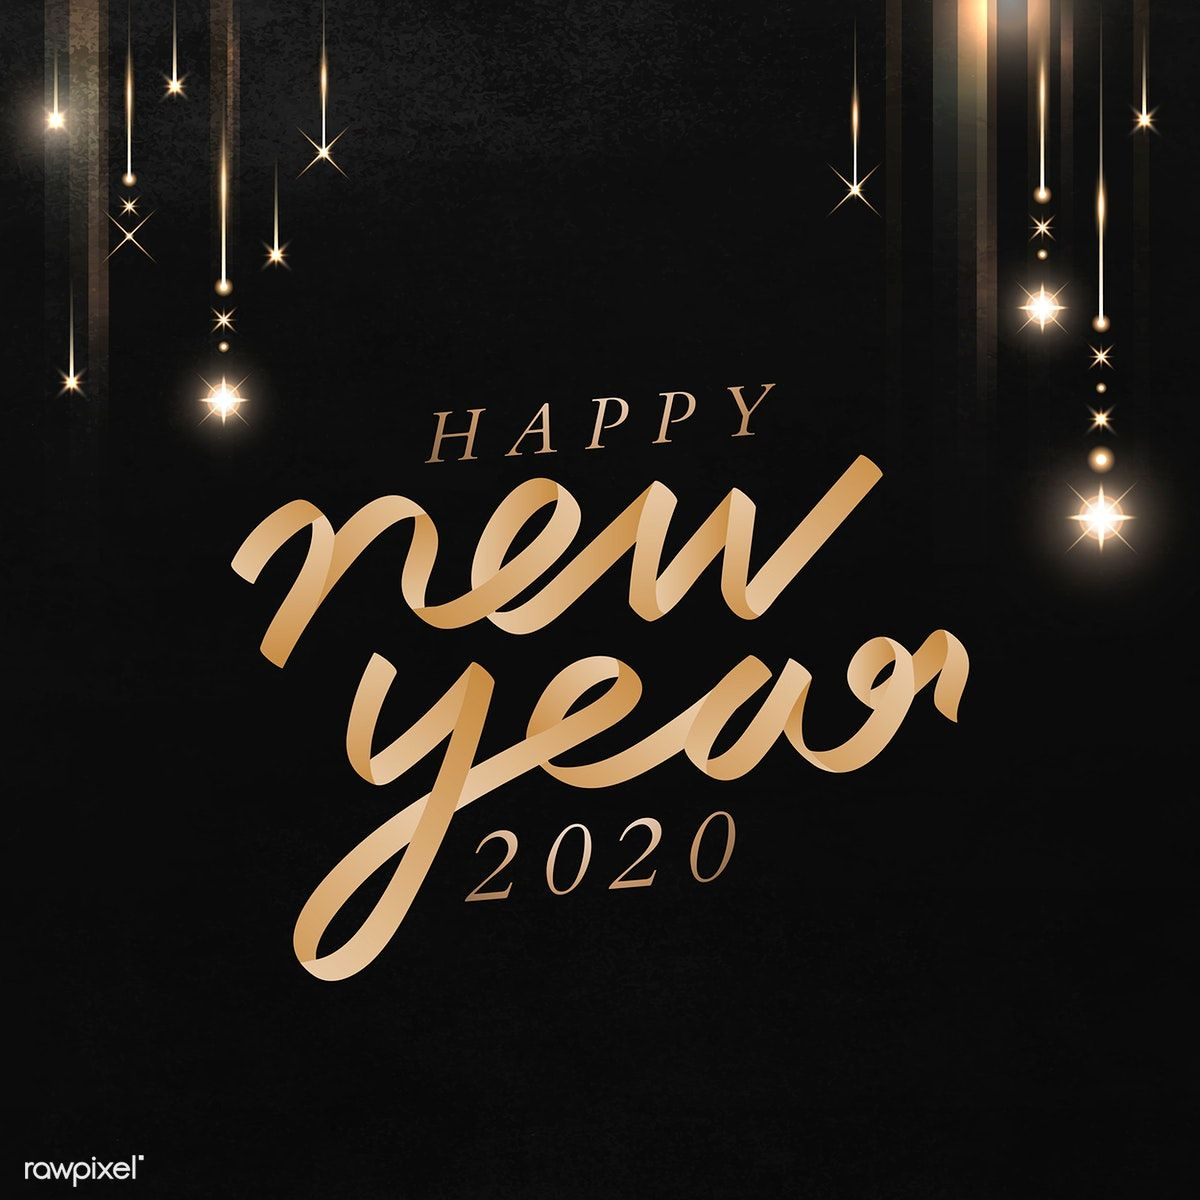 Download premium vector of Happy New Year black greeting card template #2020quotes